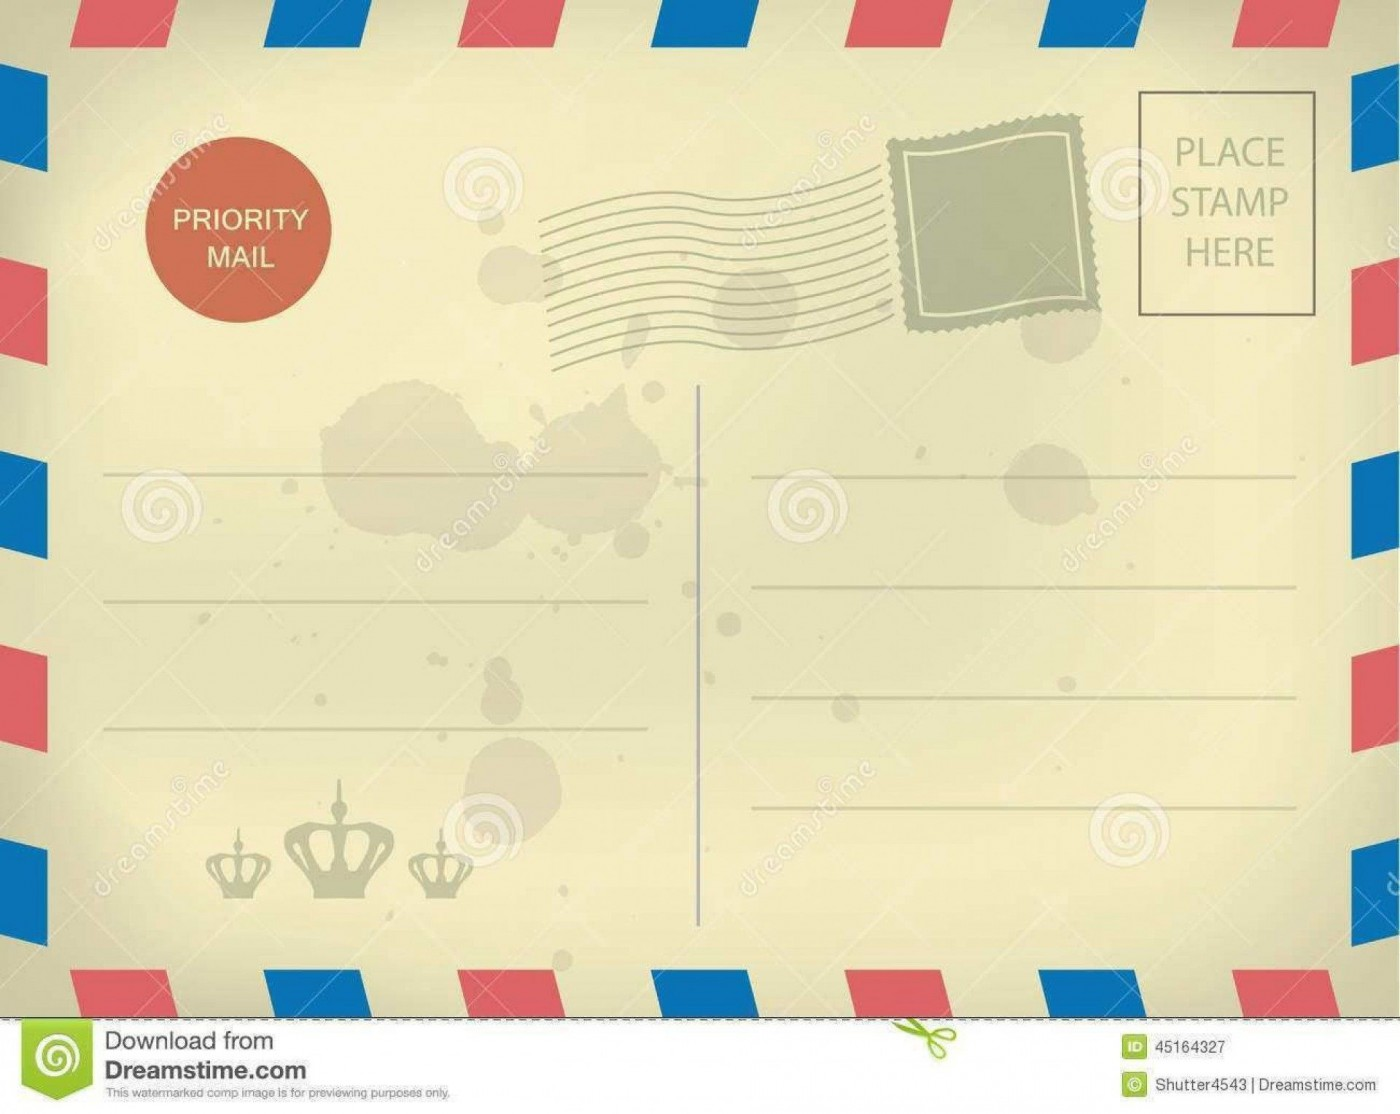 010 Impressive Postcard Layout For Microsoft Word High Resolution  Busines Template1400